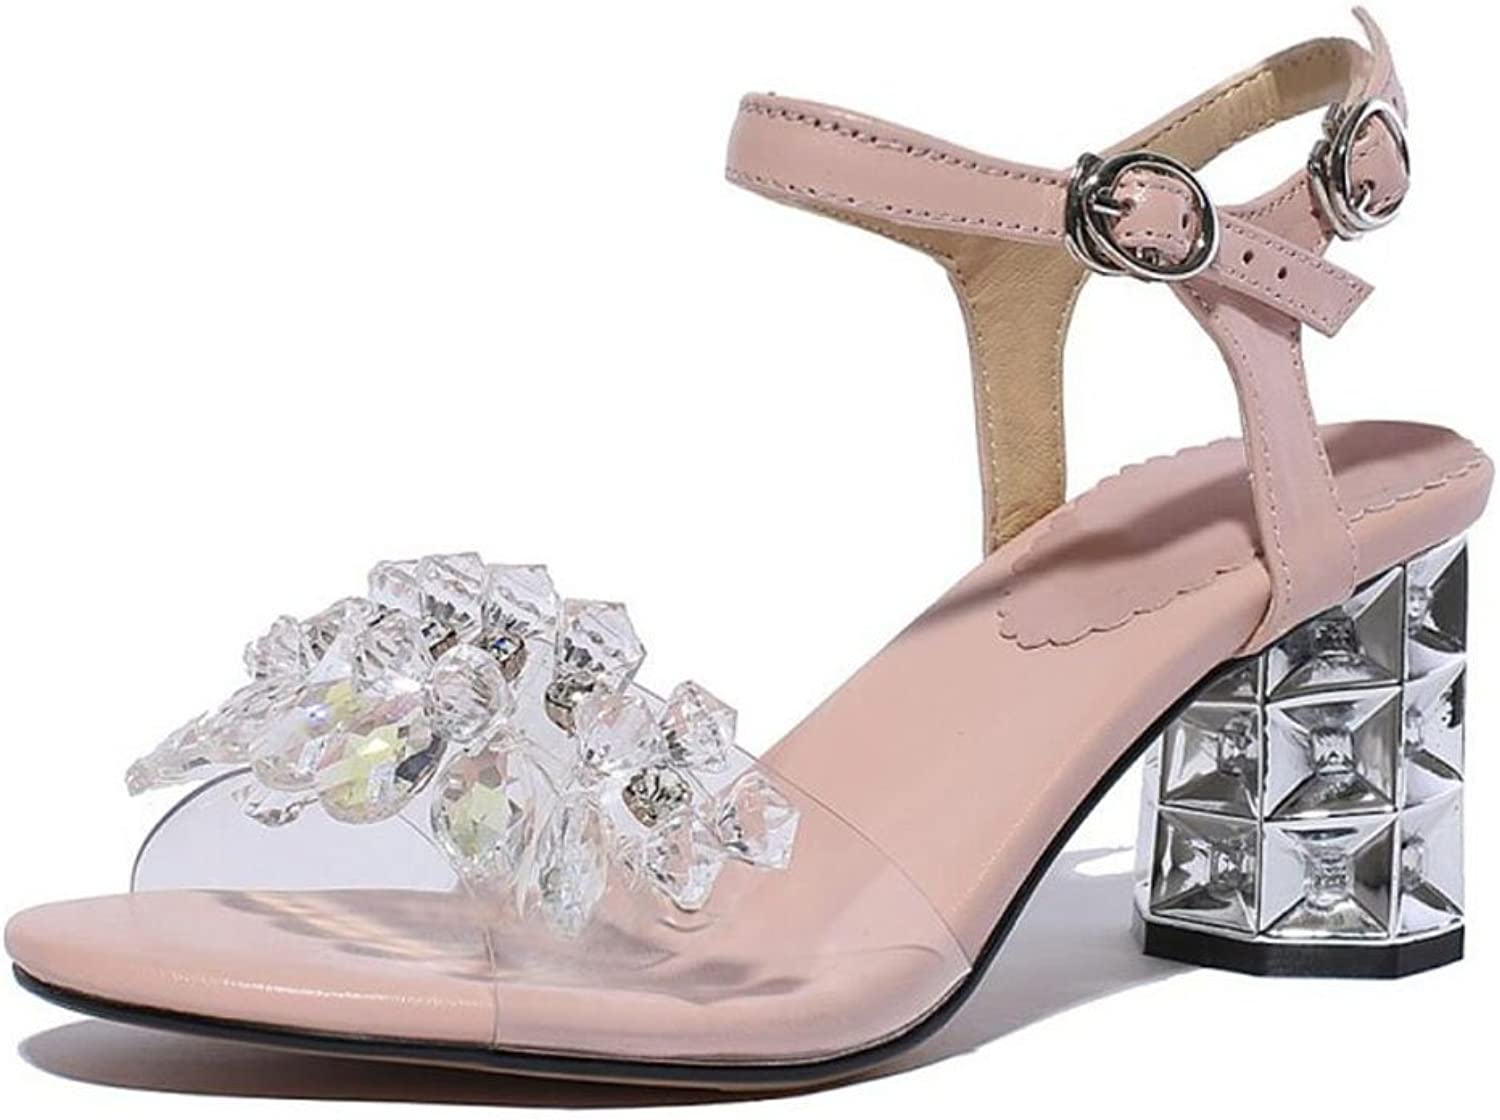 LZWSMGS Women's Open Toe Leather T-Strap Sandals Summer Sling Strap Rhinestone High Heels Glamgoldus Pump Pink Silver Ladies Sandals (color   Pink, Size   36)